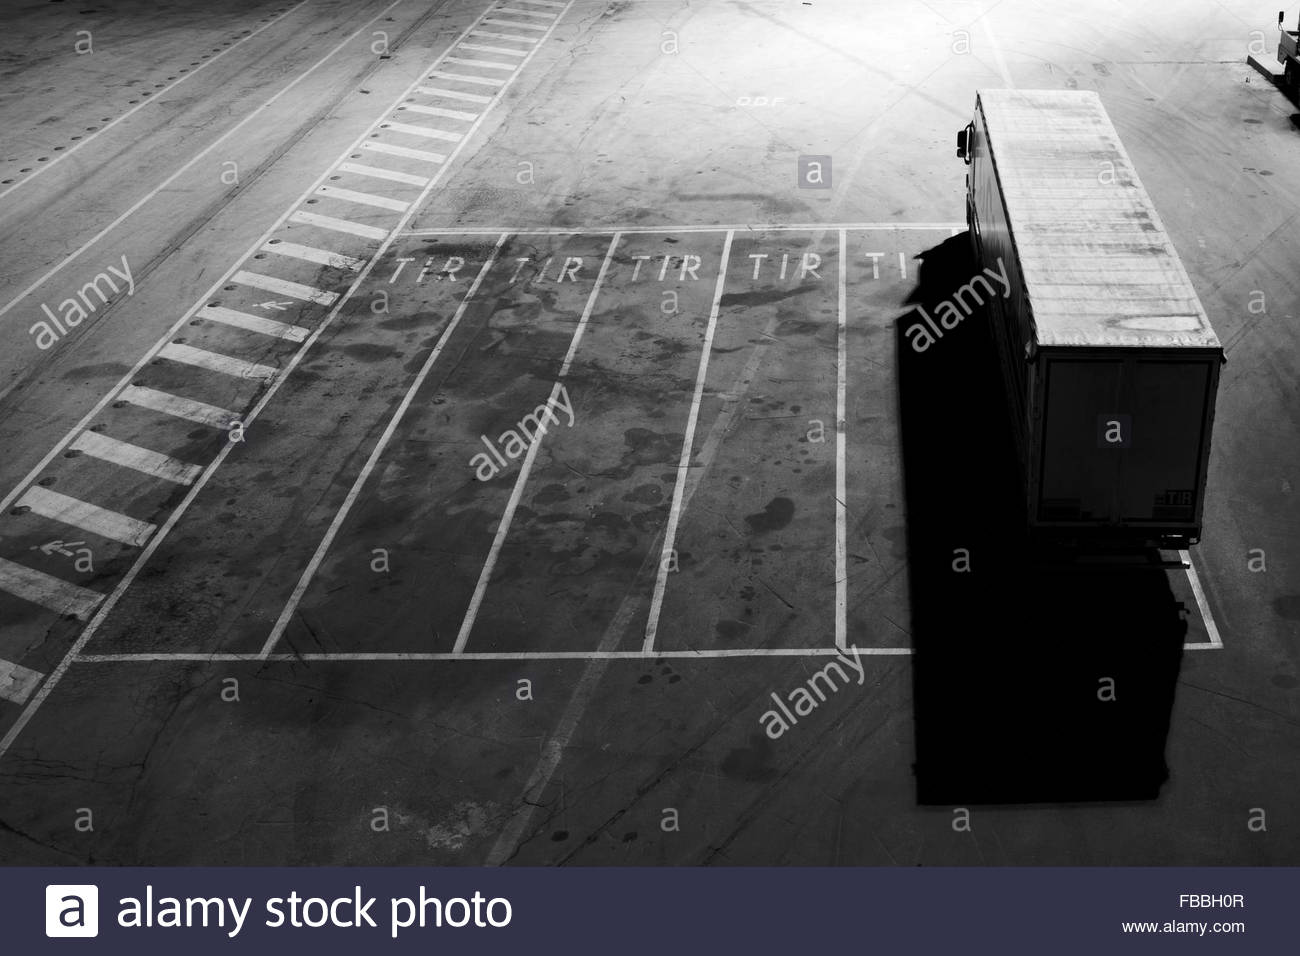 Track in a parking lot - Stock Image